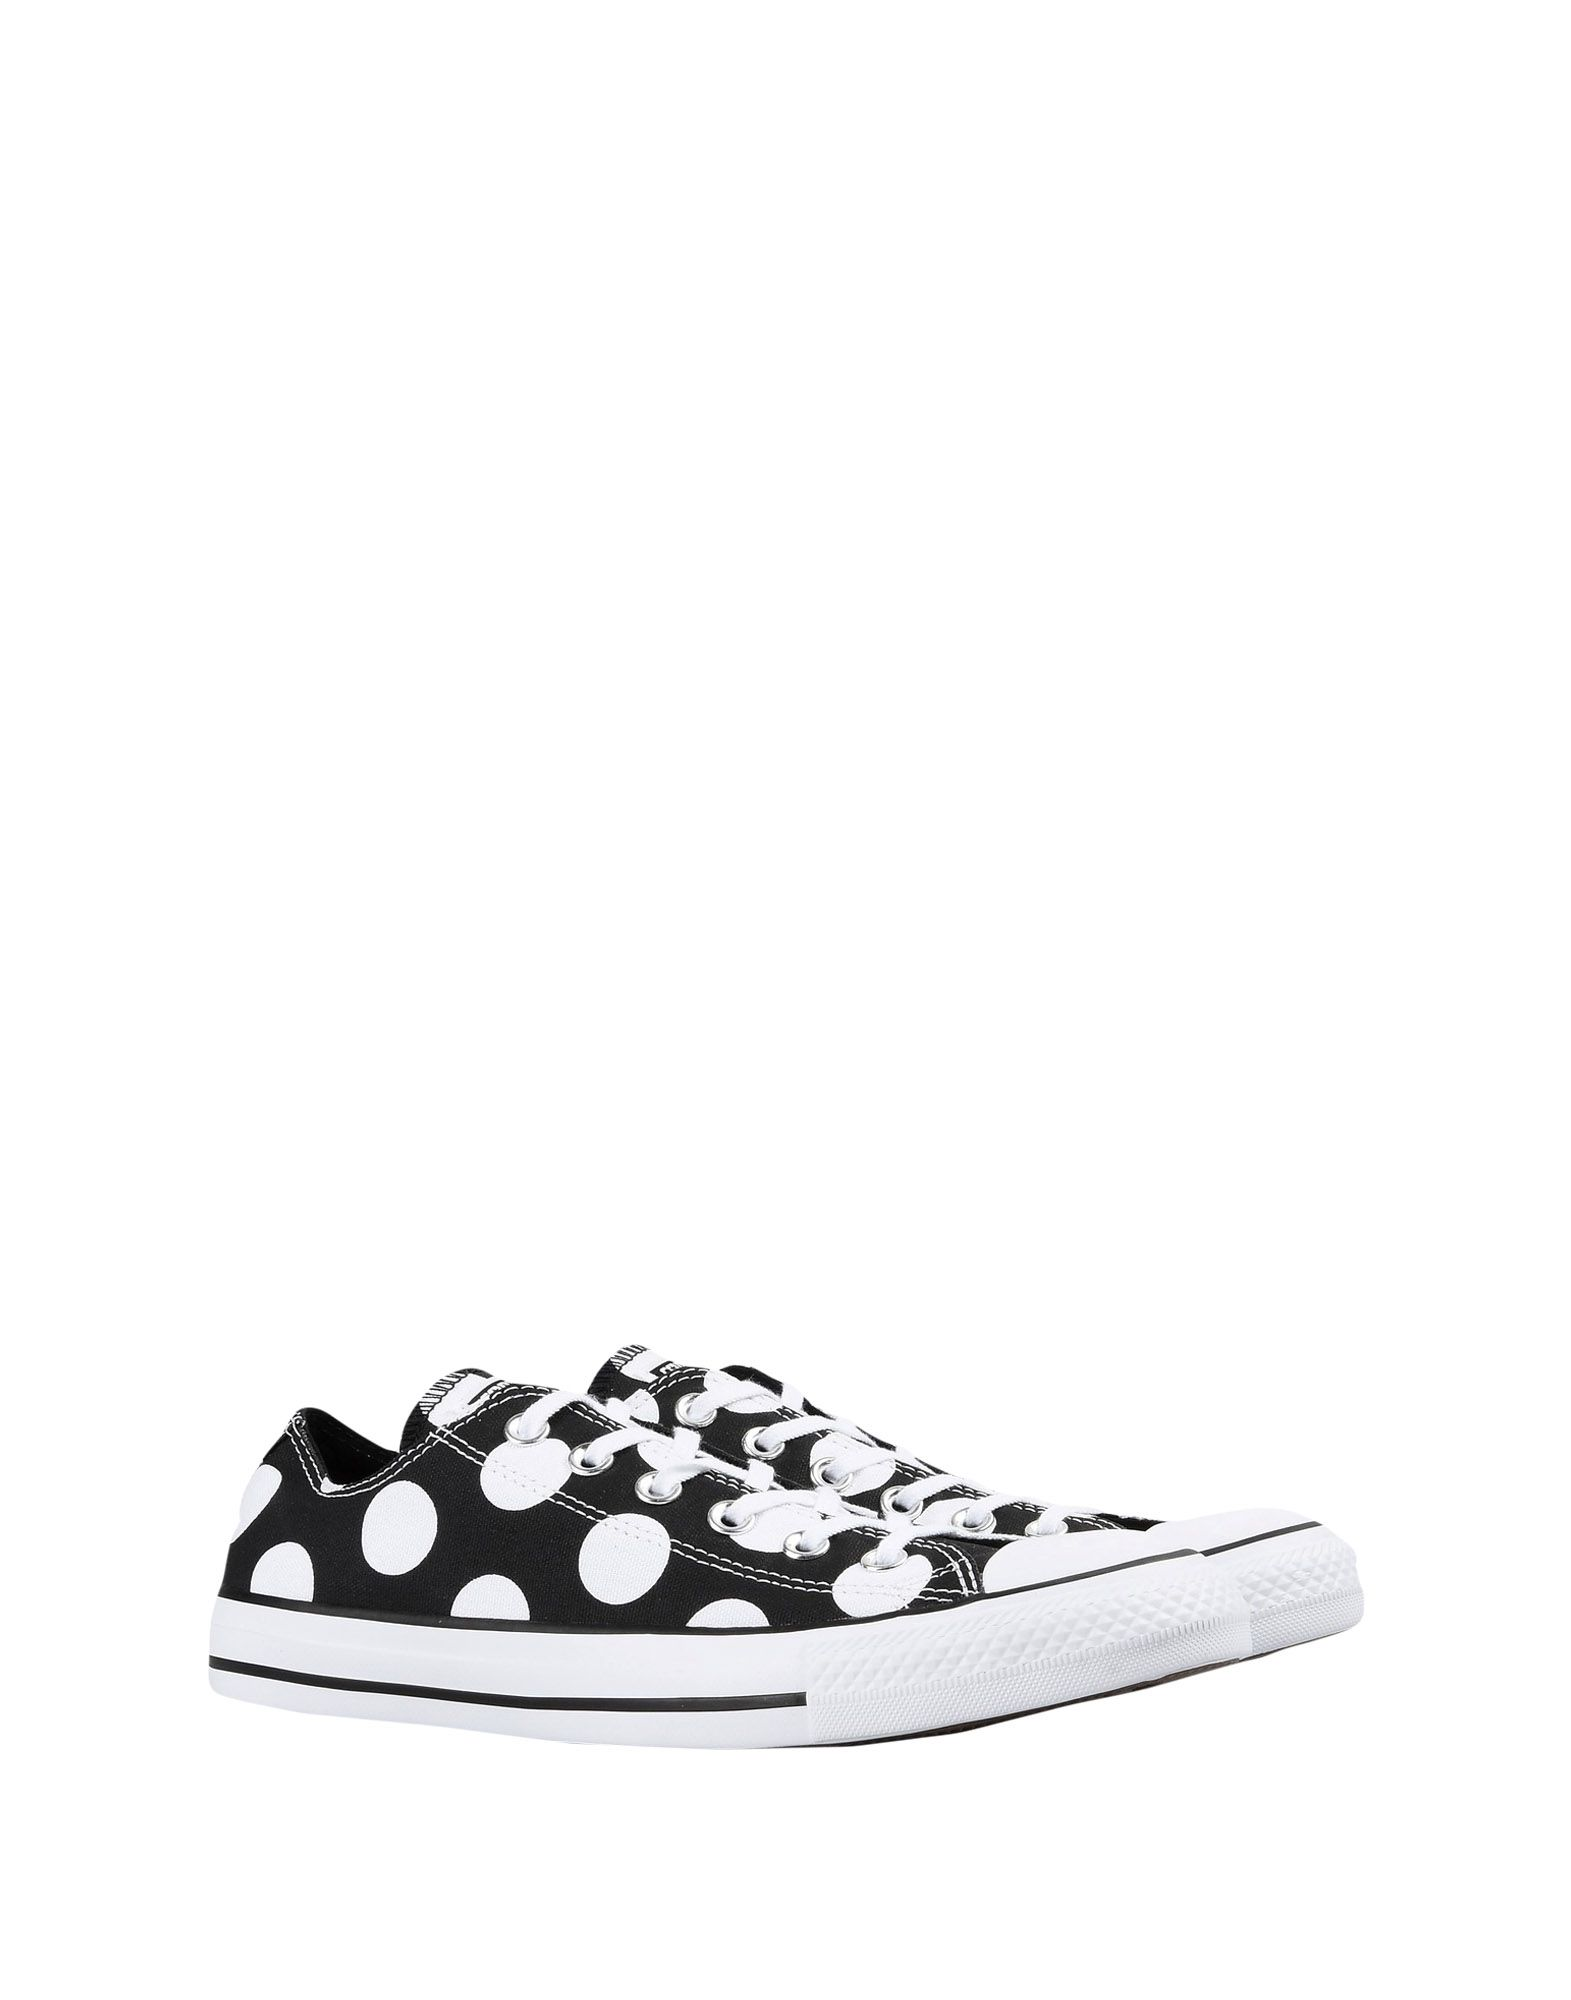 Sneakers Converse All Star Ct As Ox Canvas Print - Femme - Sneakers Converse All Star sur